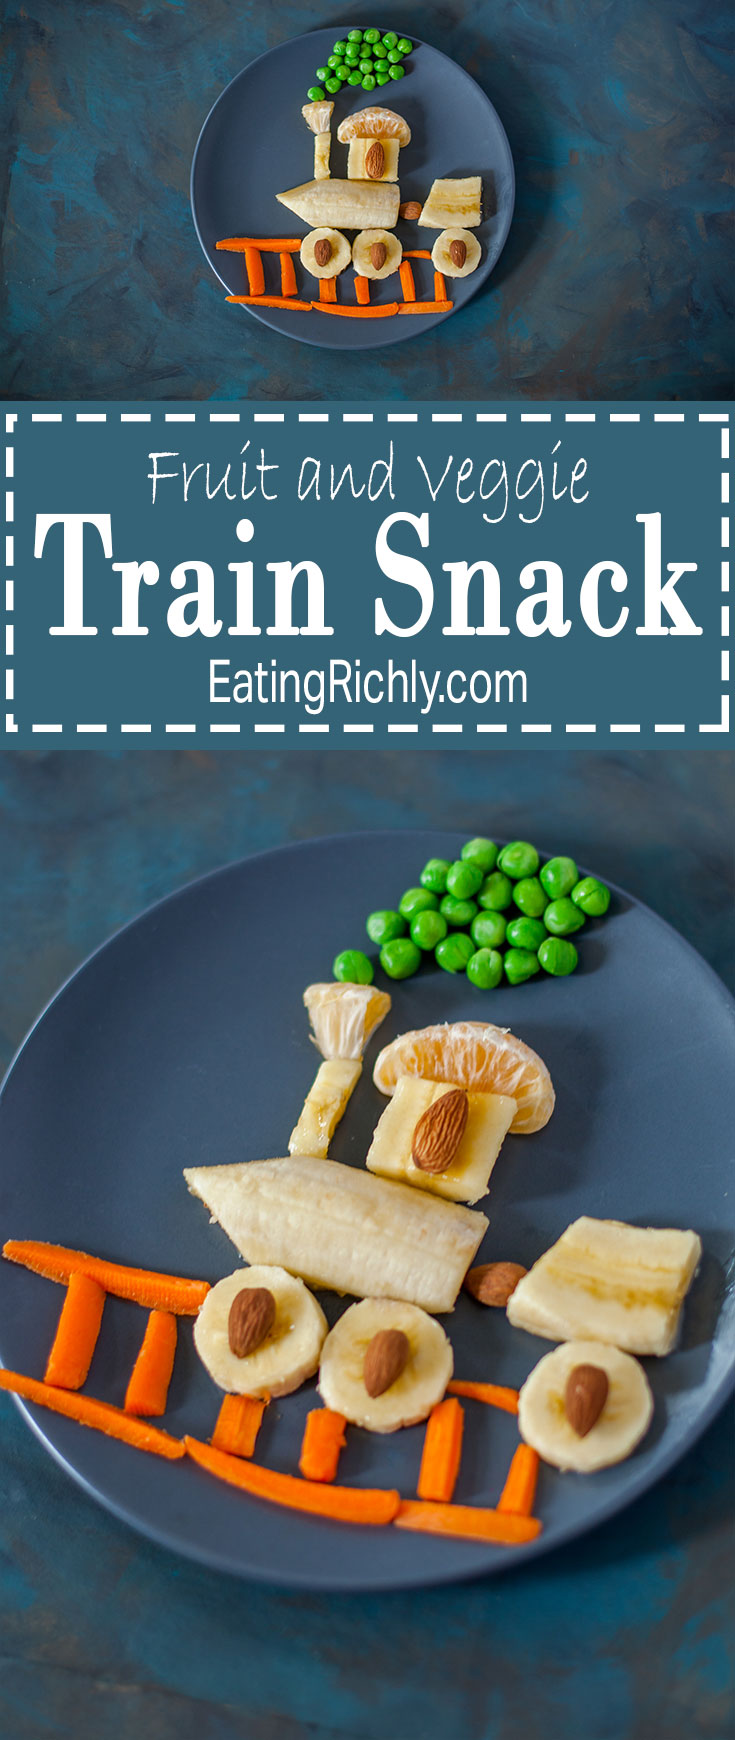 This fruit & veggie train snack is fast and easy to make, & a great way to get produce into any kid who loves trains. You've got to see the reaction video on EatingRichly.com!